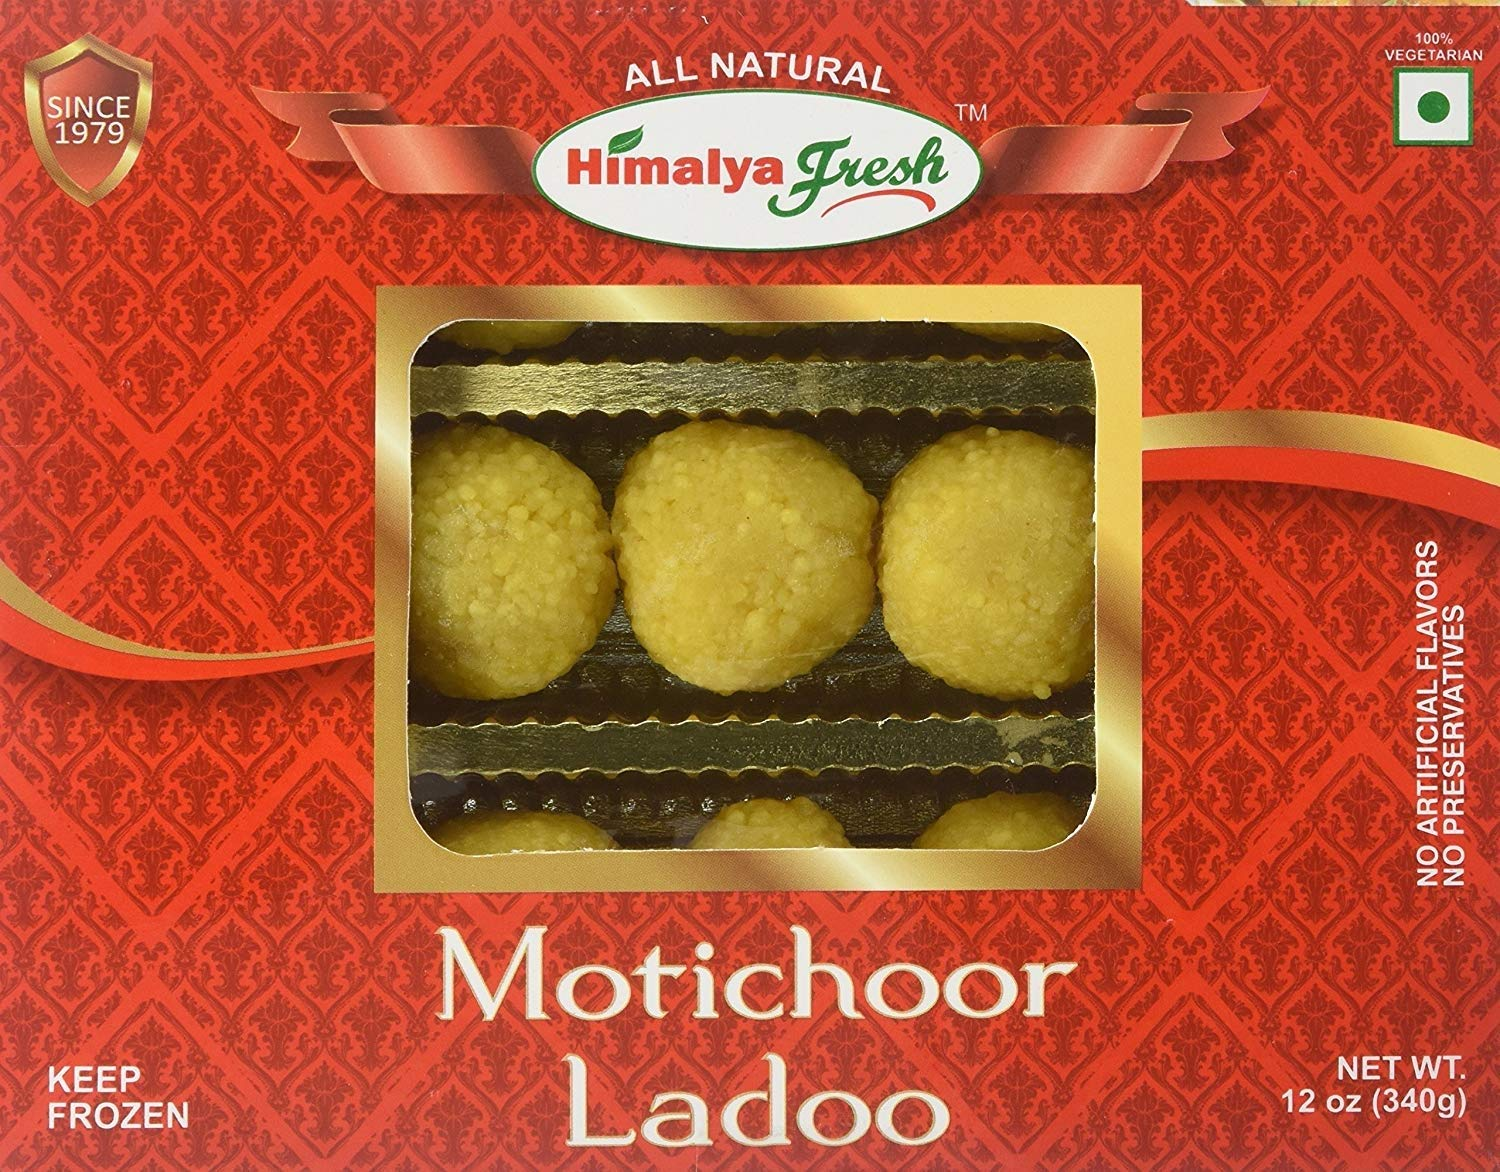 HIMALYA FRESH Motichoor Ladoo 12oz - Premium Authentic Indian Food & Sweets Made With pure simple ingredients Gram flour, Sugar & Vegetable Oil - No Fillers Or Preservatives (2 Boxes) by Himalya Fresh